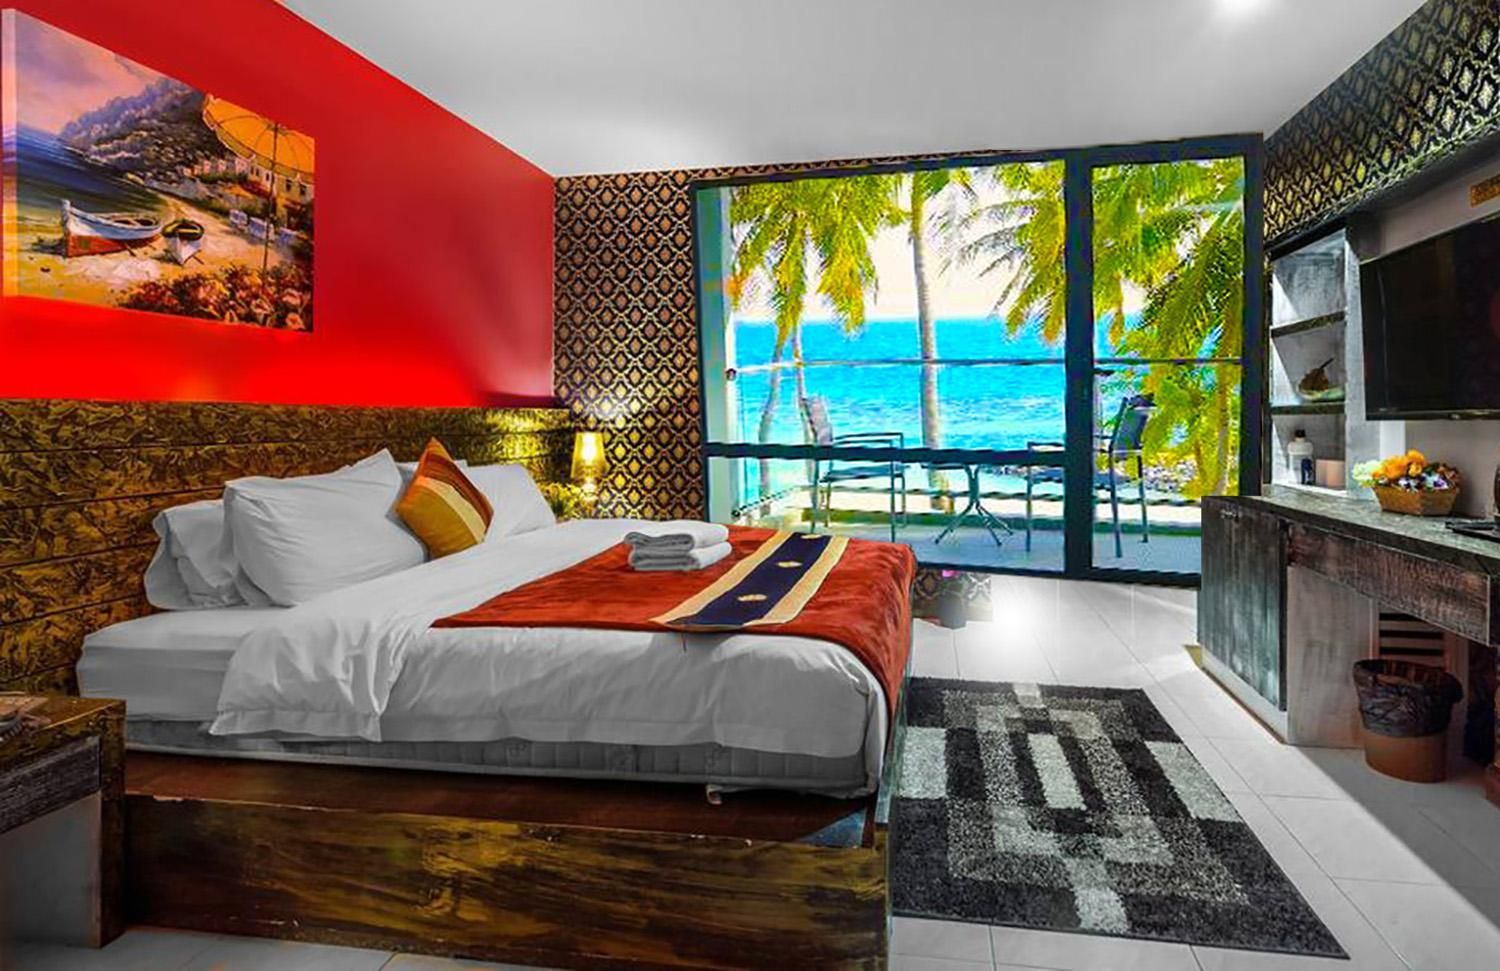 The Shades Boutique Hotel